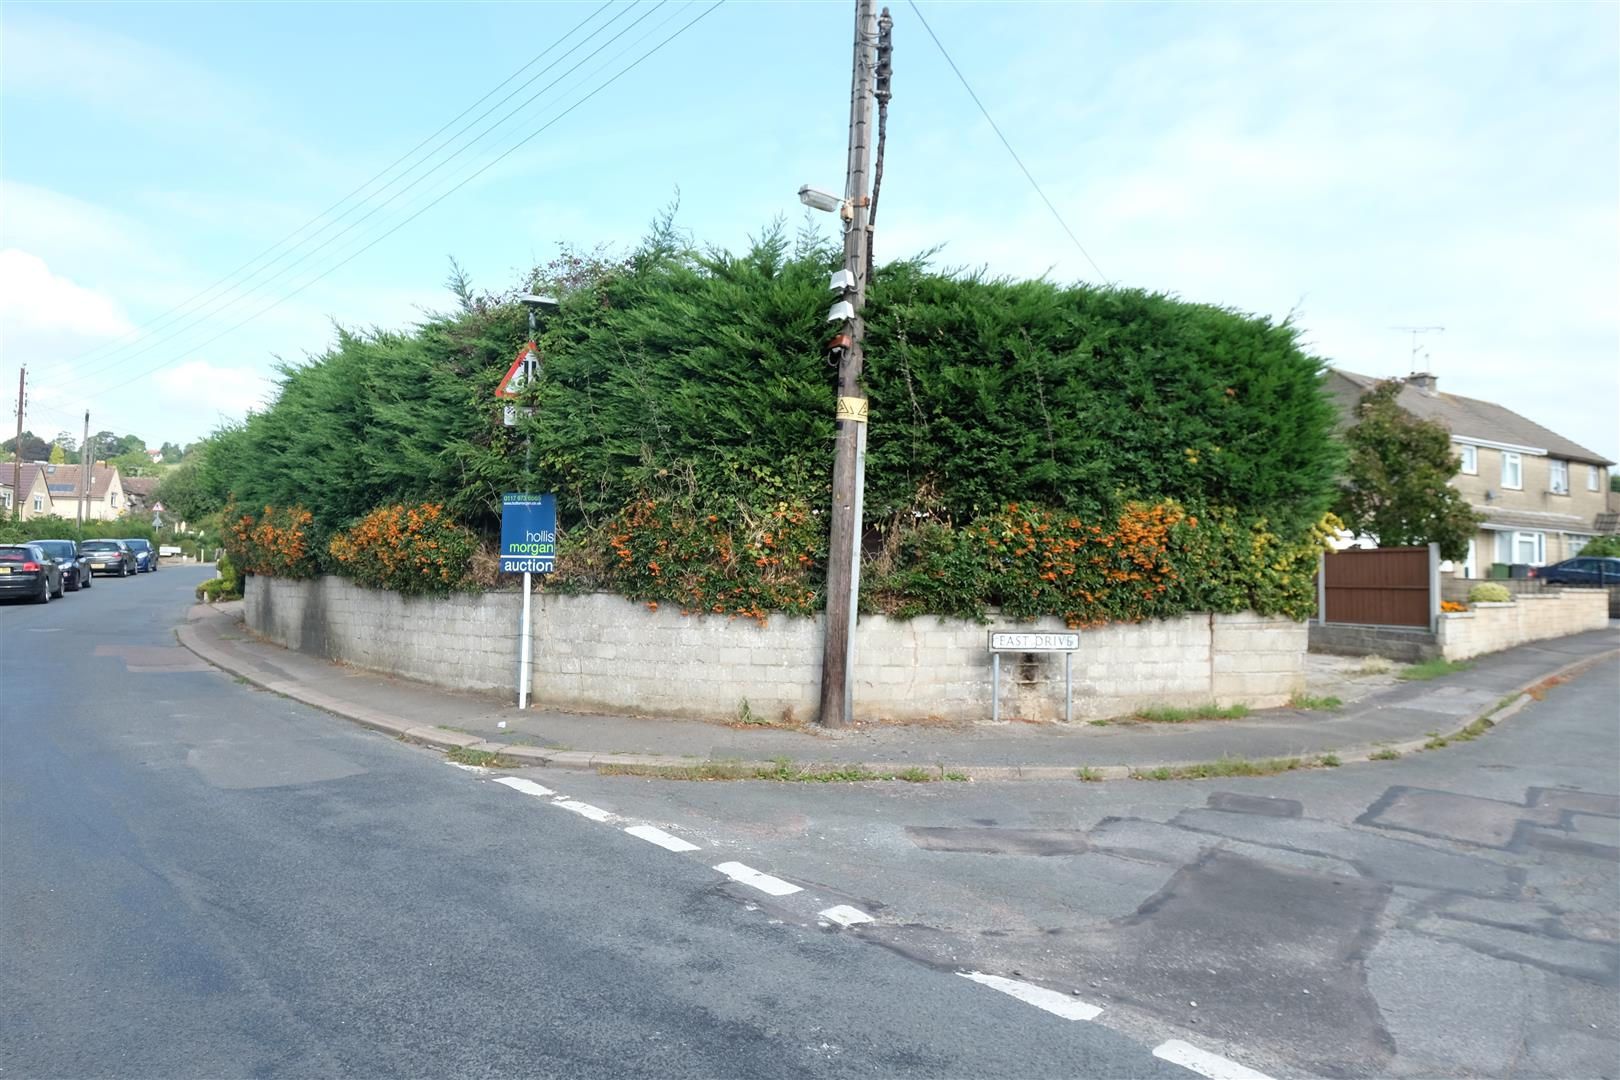 Images for PLANNING GRATED - DETACHED 4 BED EAID:hollismoapi BID:11